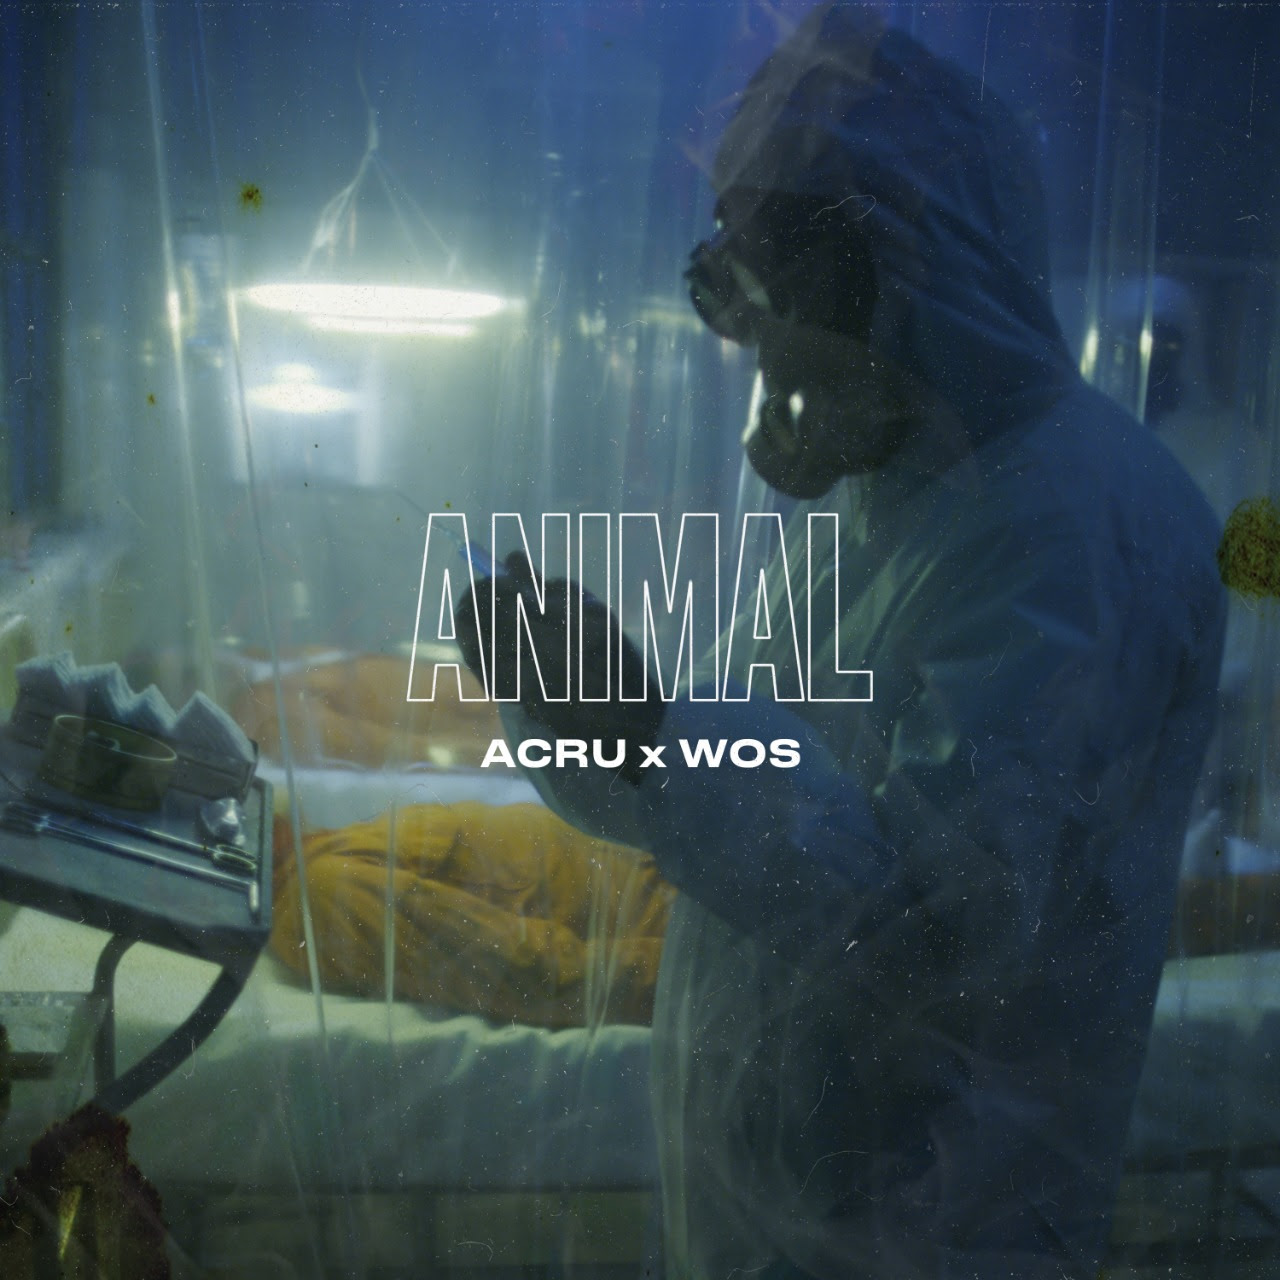 ACRU X WOS ANIMAL LOQUEVA